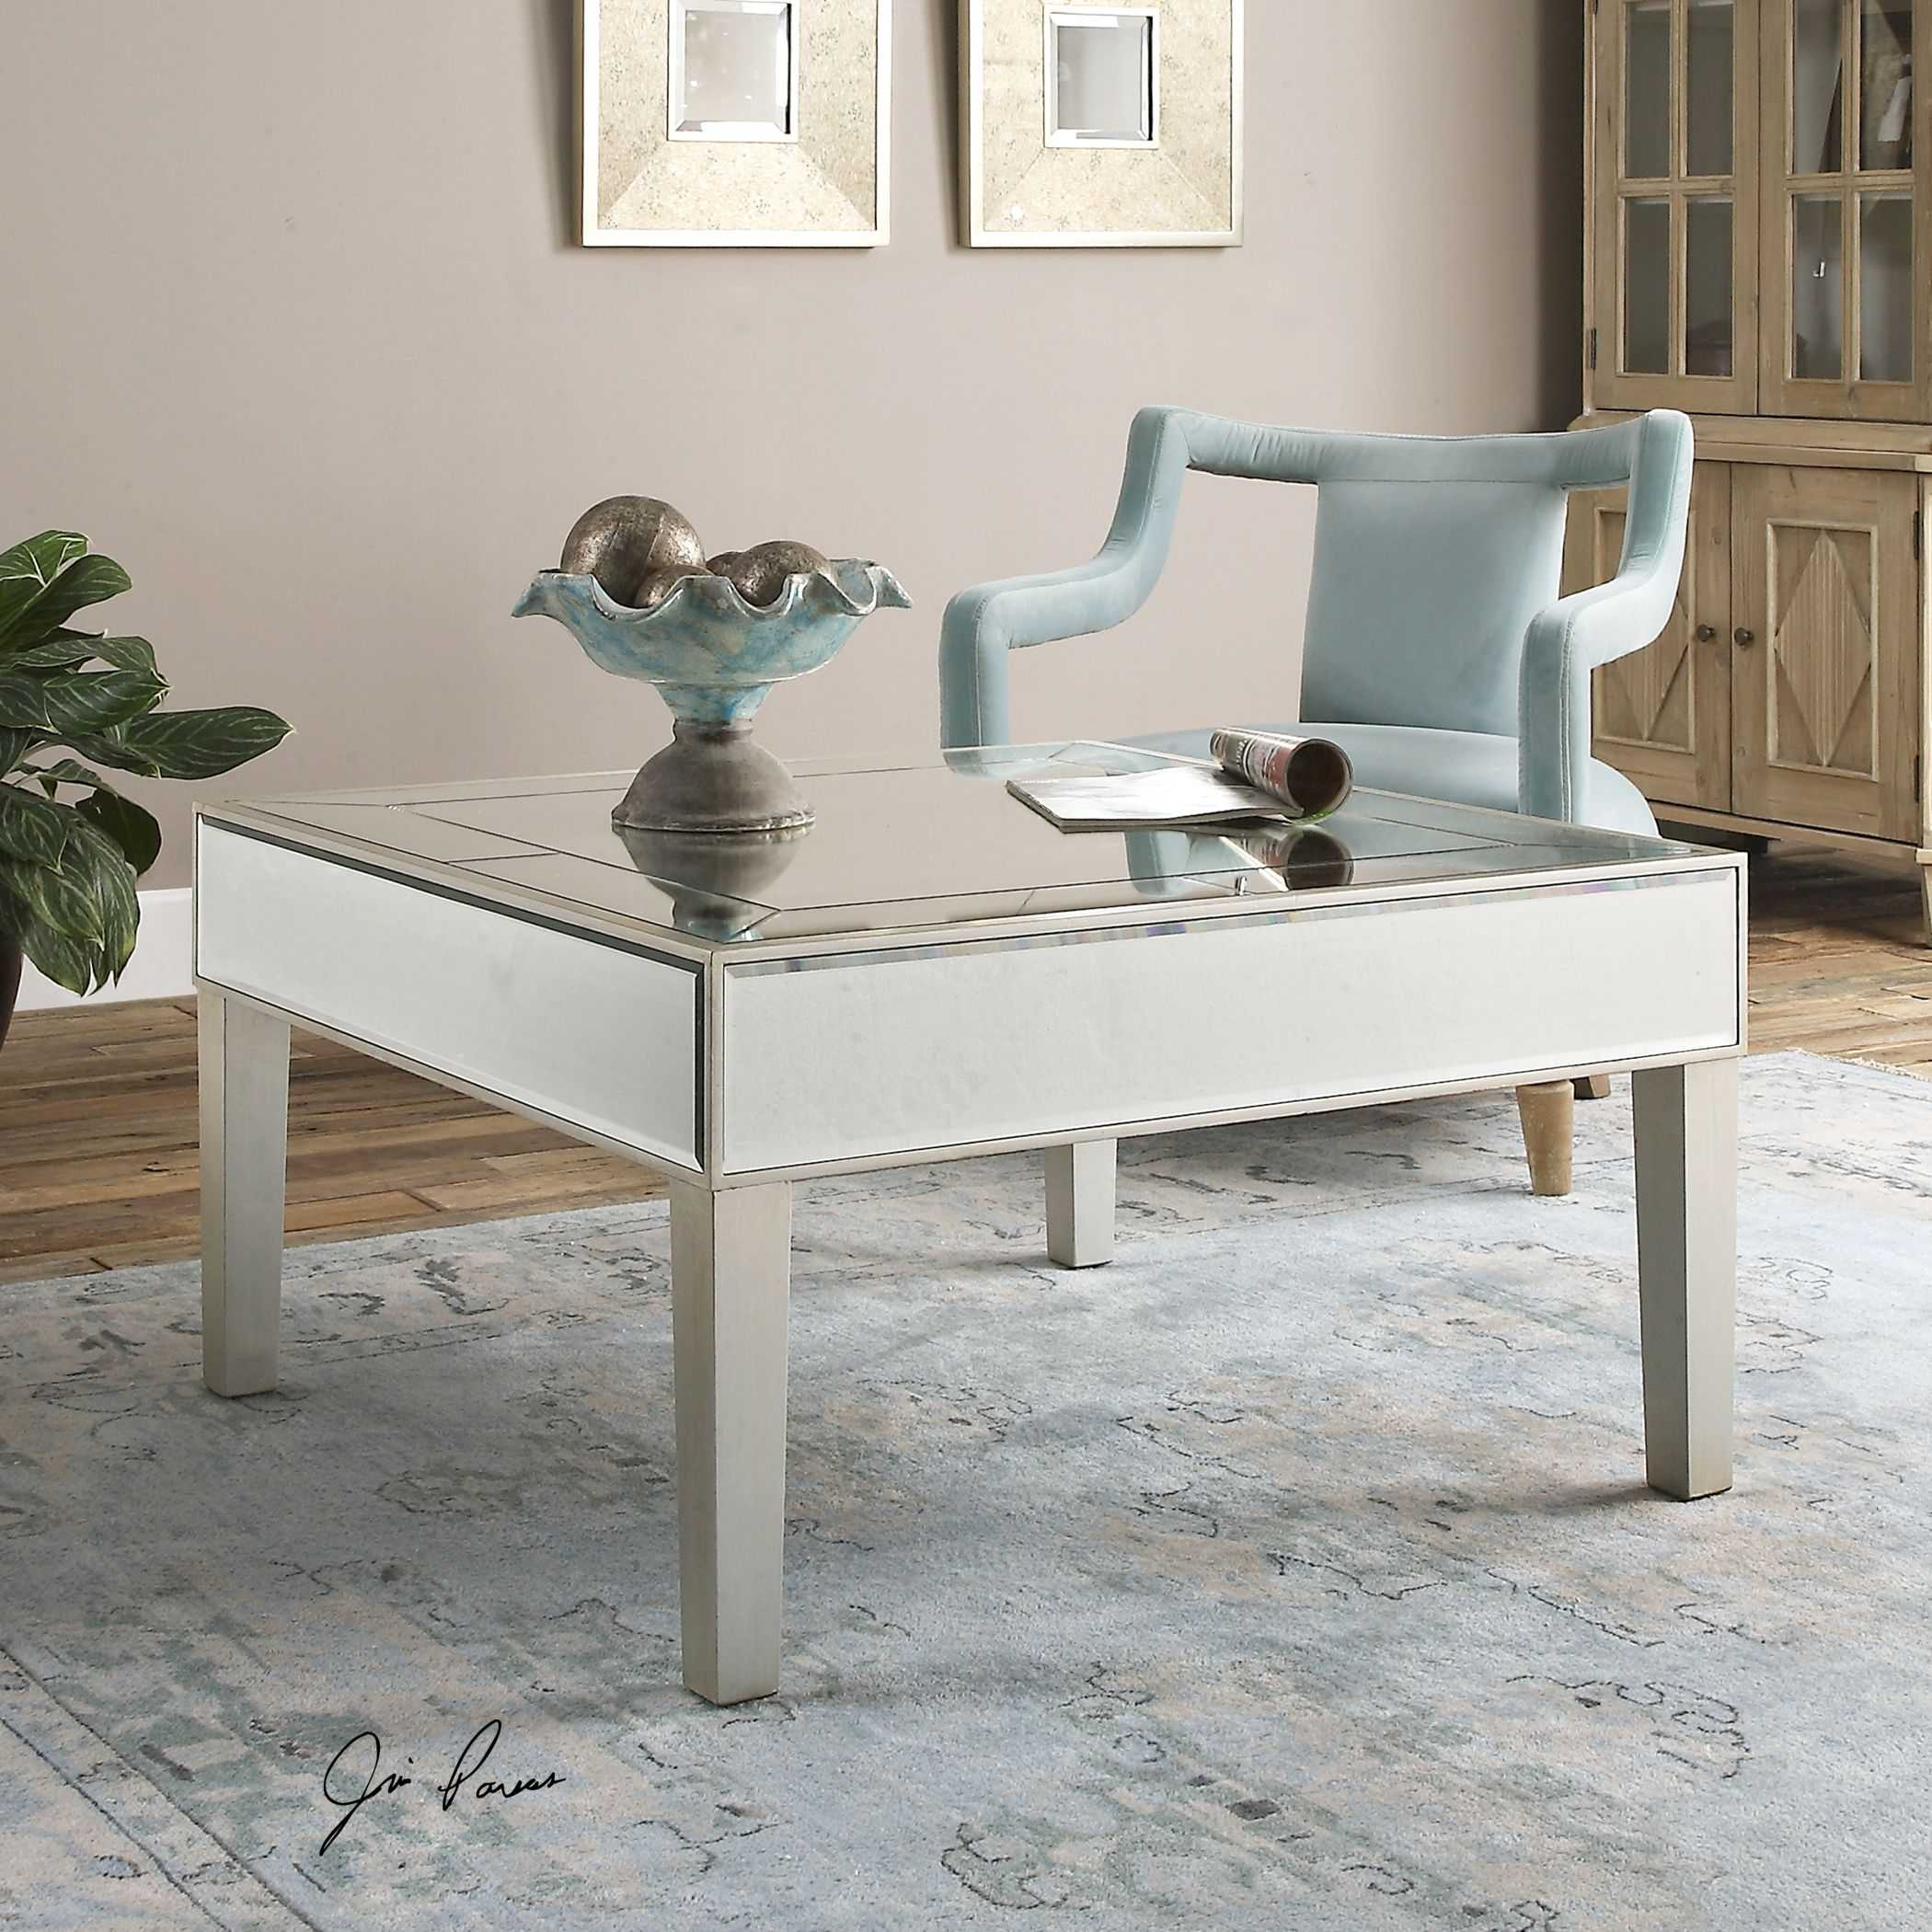 Low Square Mirrored Coffee Table: Uttermost Enrikos 36 Square Silver Leaf Mirrored Coffee